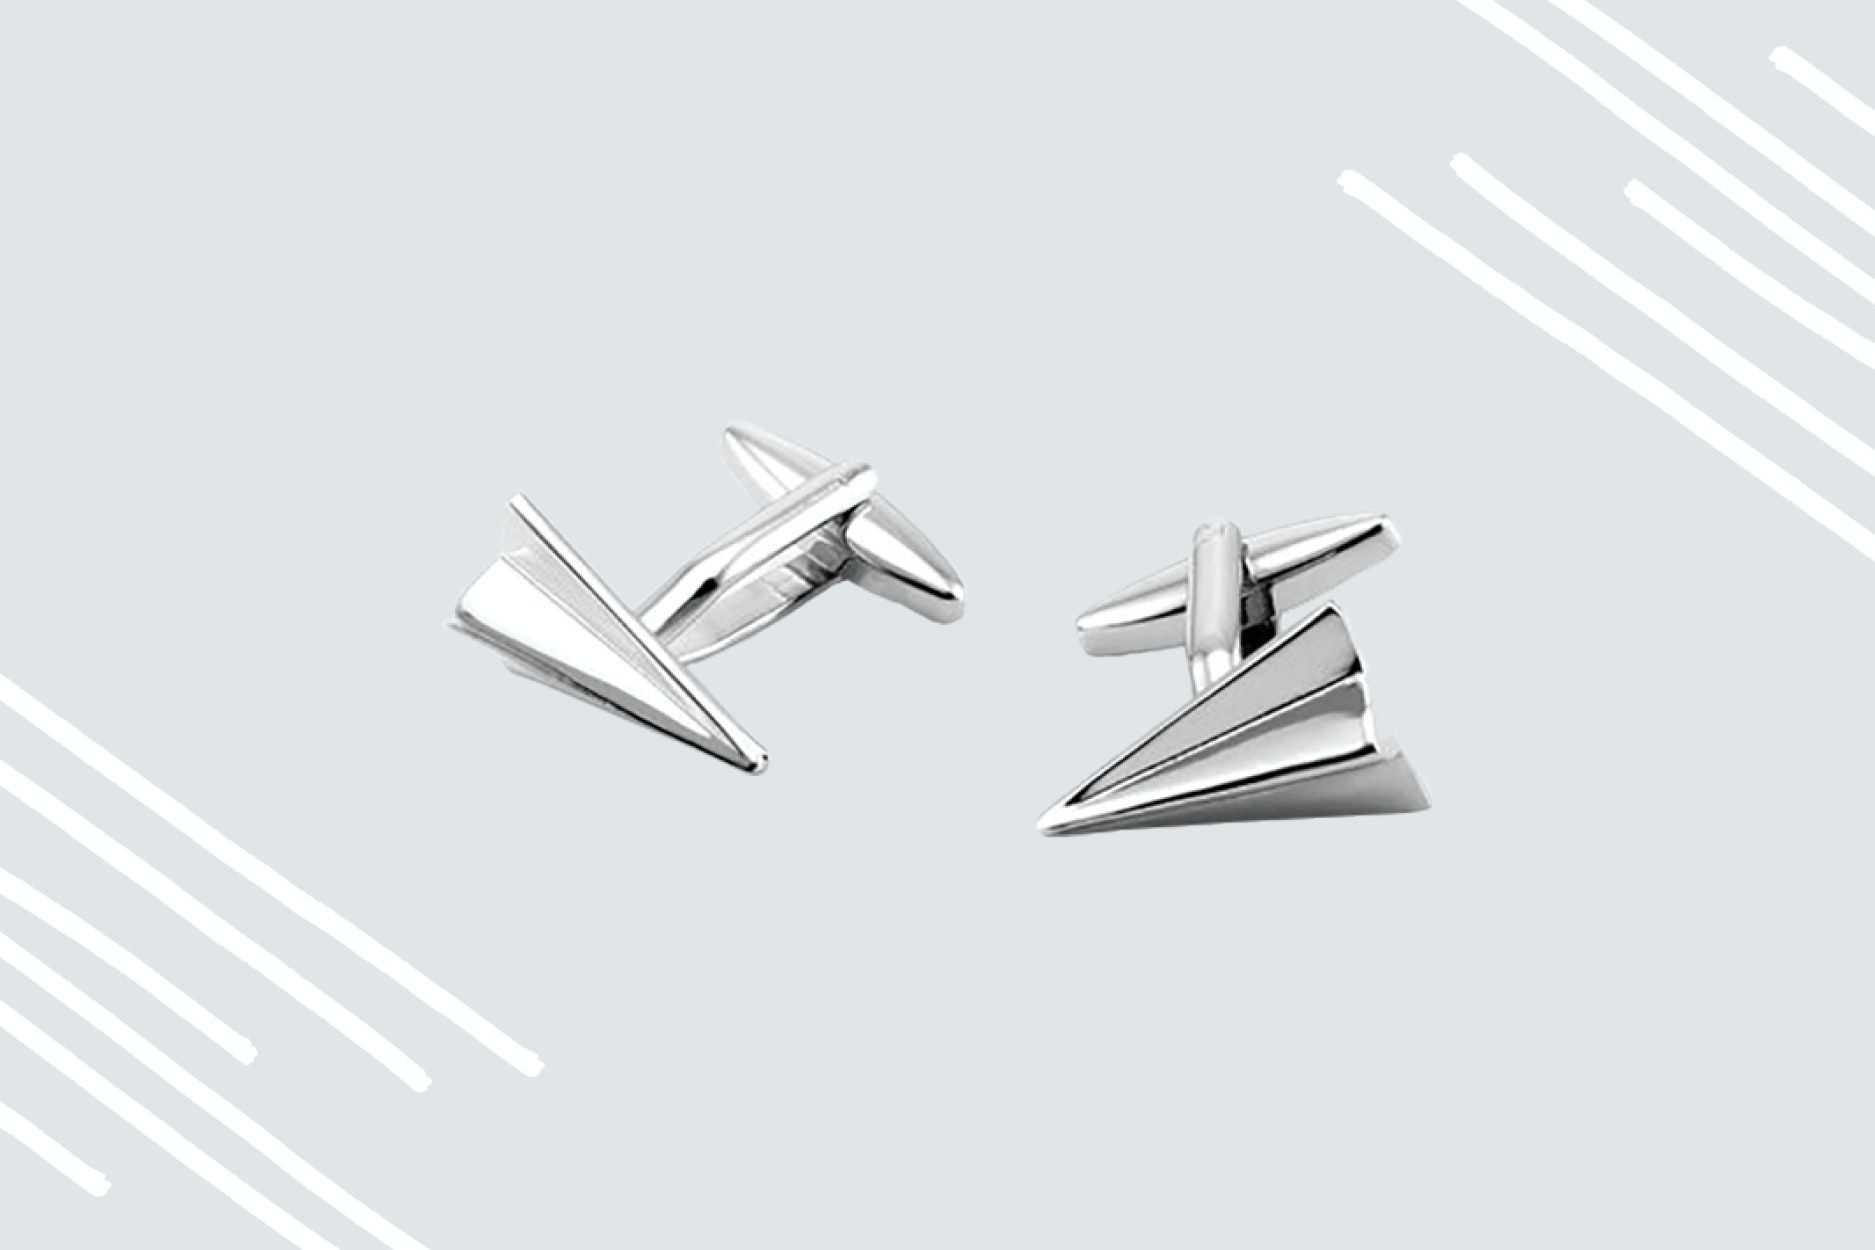 Show off aviation adoration with snazzy airplane cufflinks.